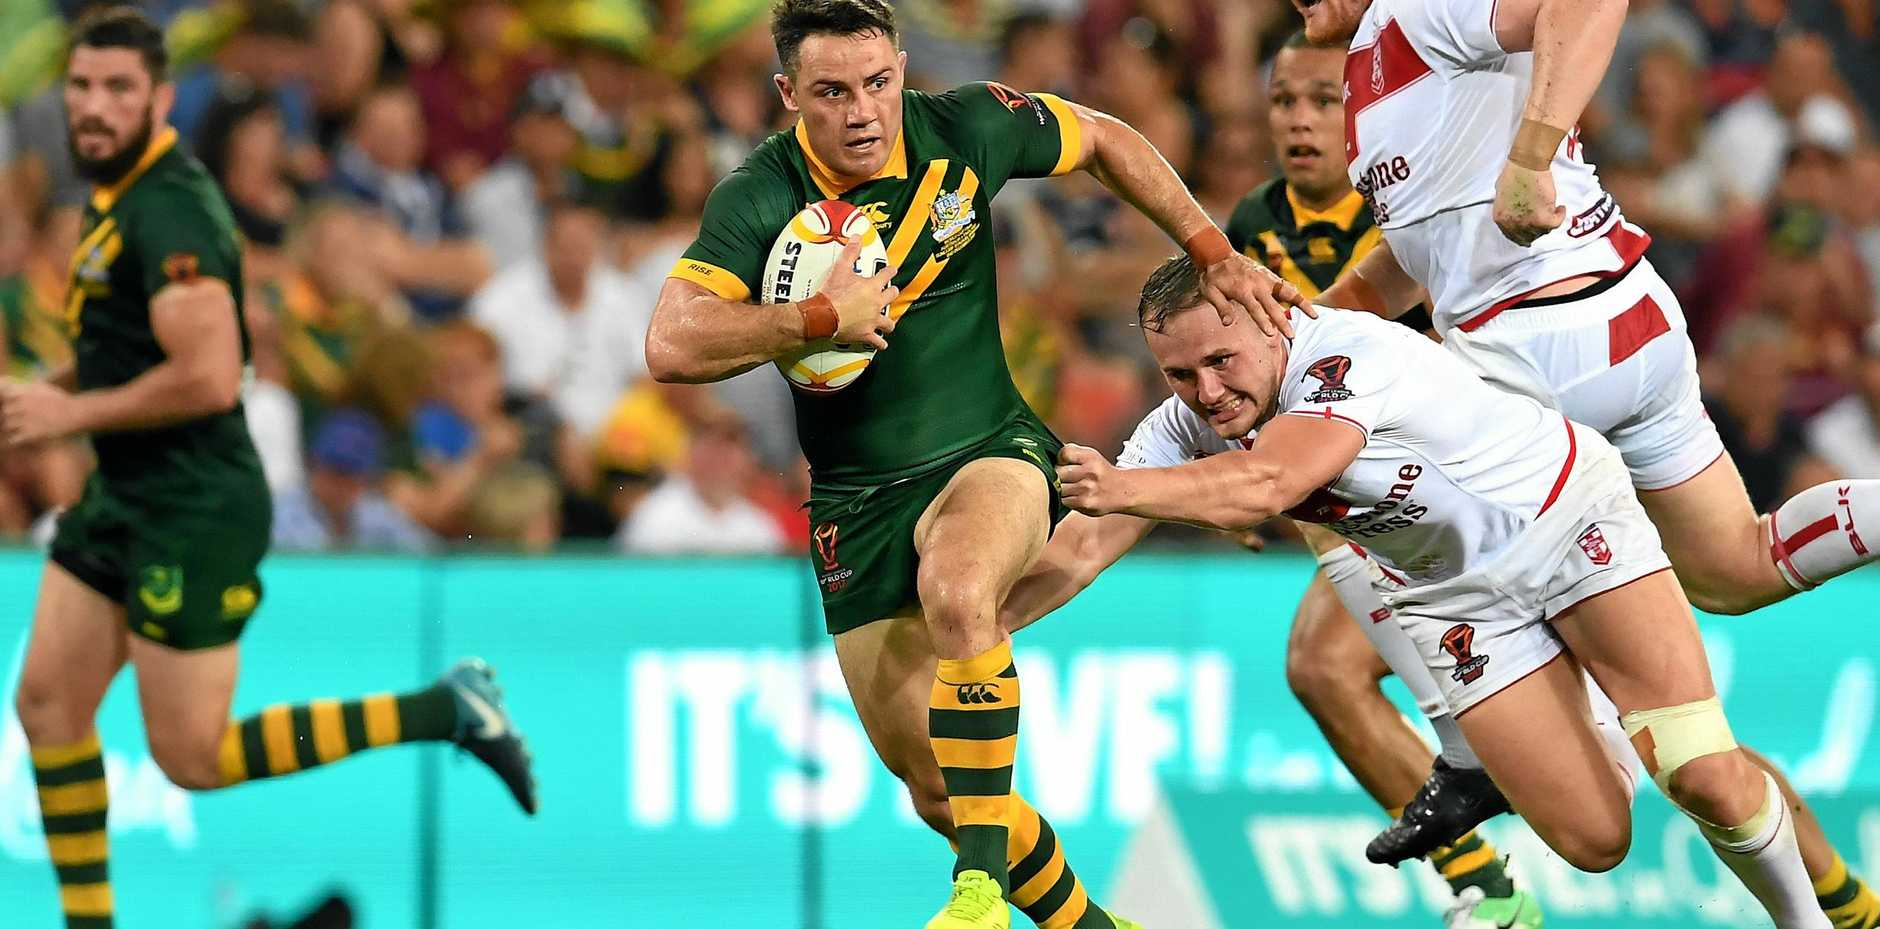 Cooper Cronk ended his representative career after Australia's win in the World Cup final